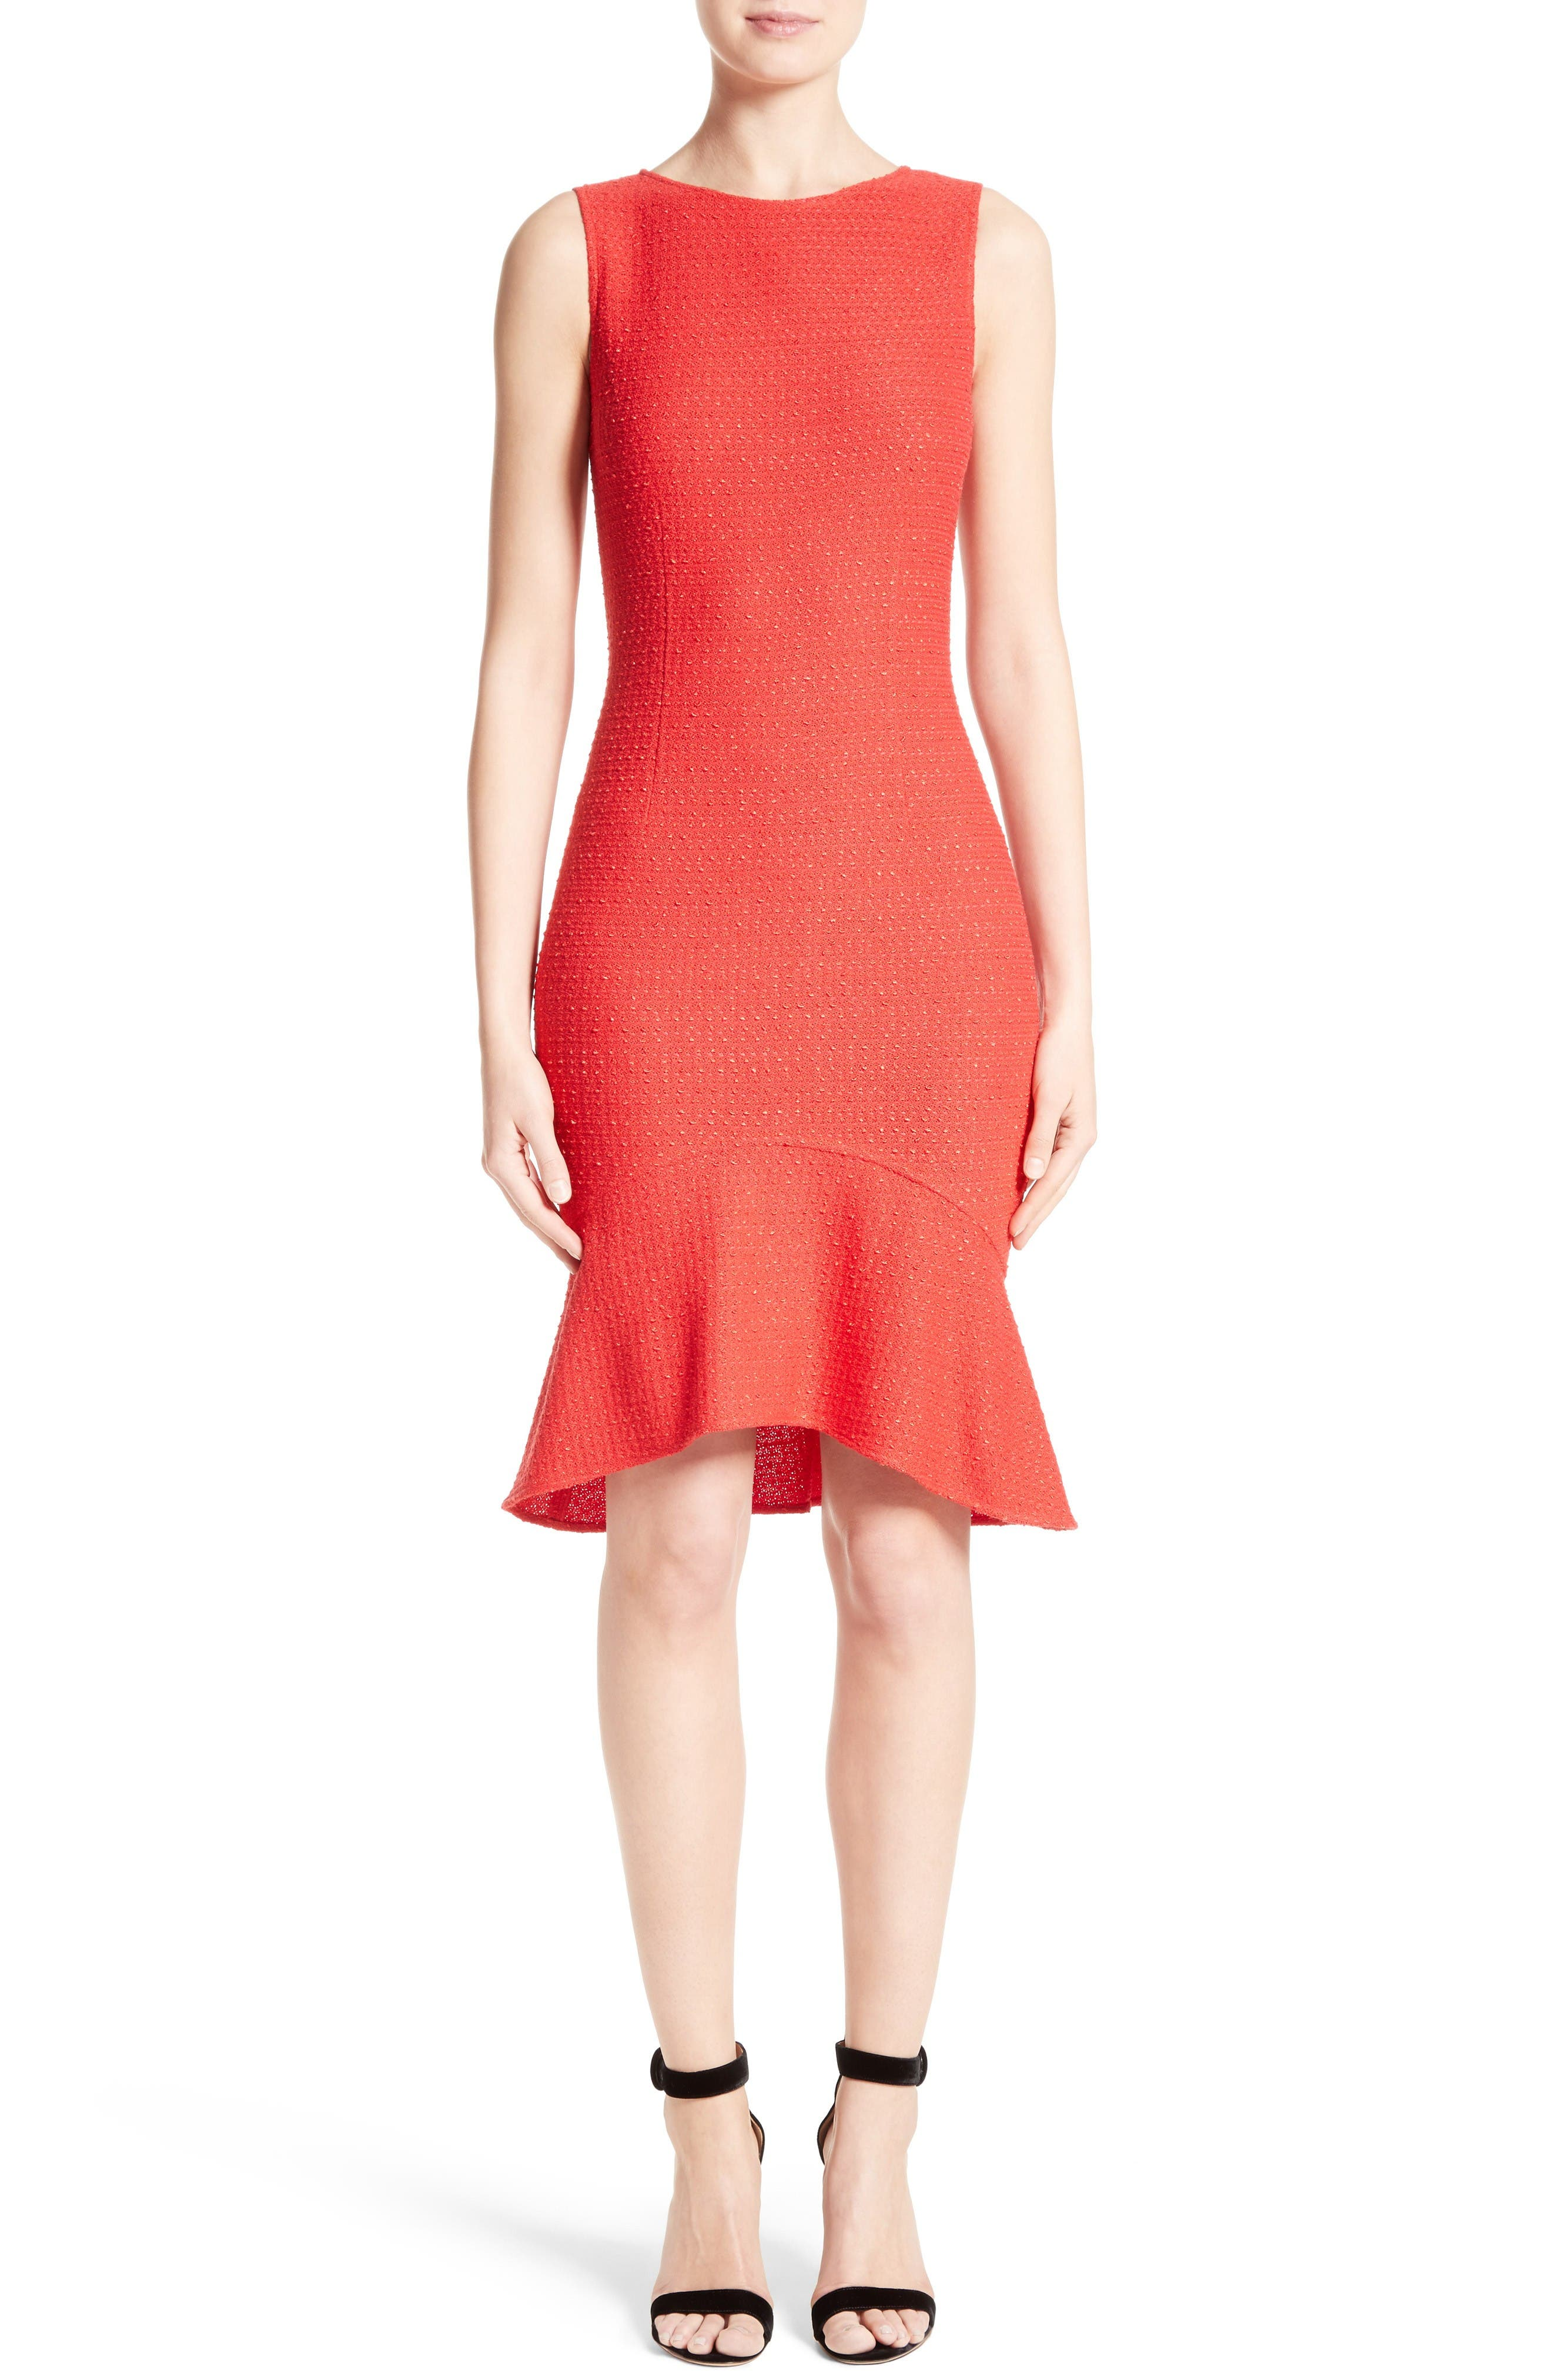 Alternate Image 1 Selected - St. John Collection Ribbon Knit Flounce Dress